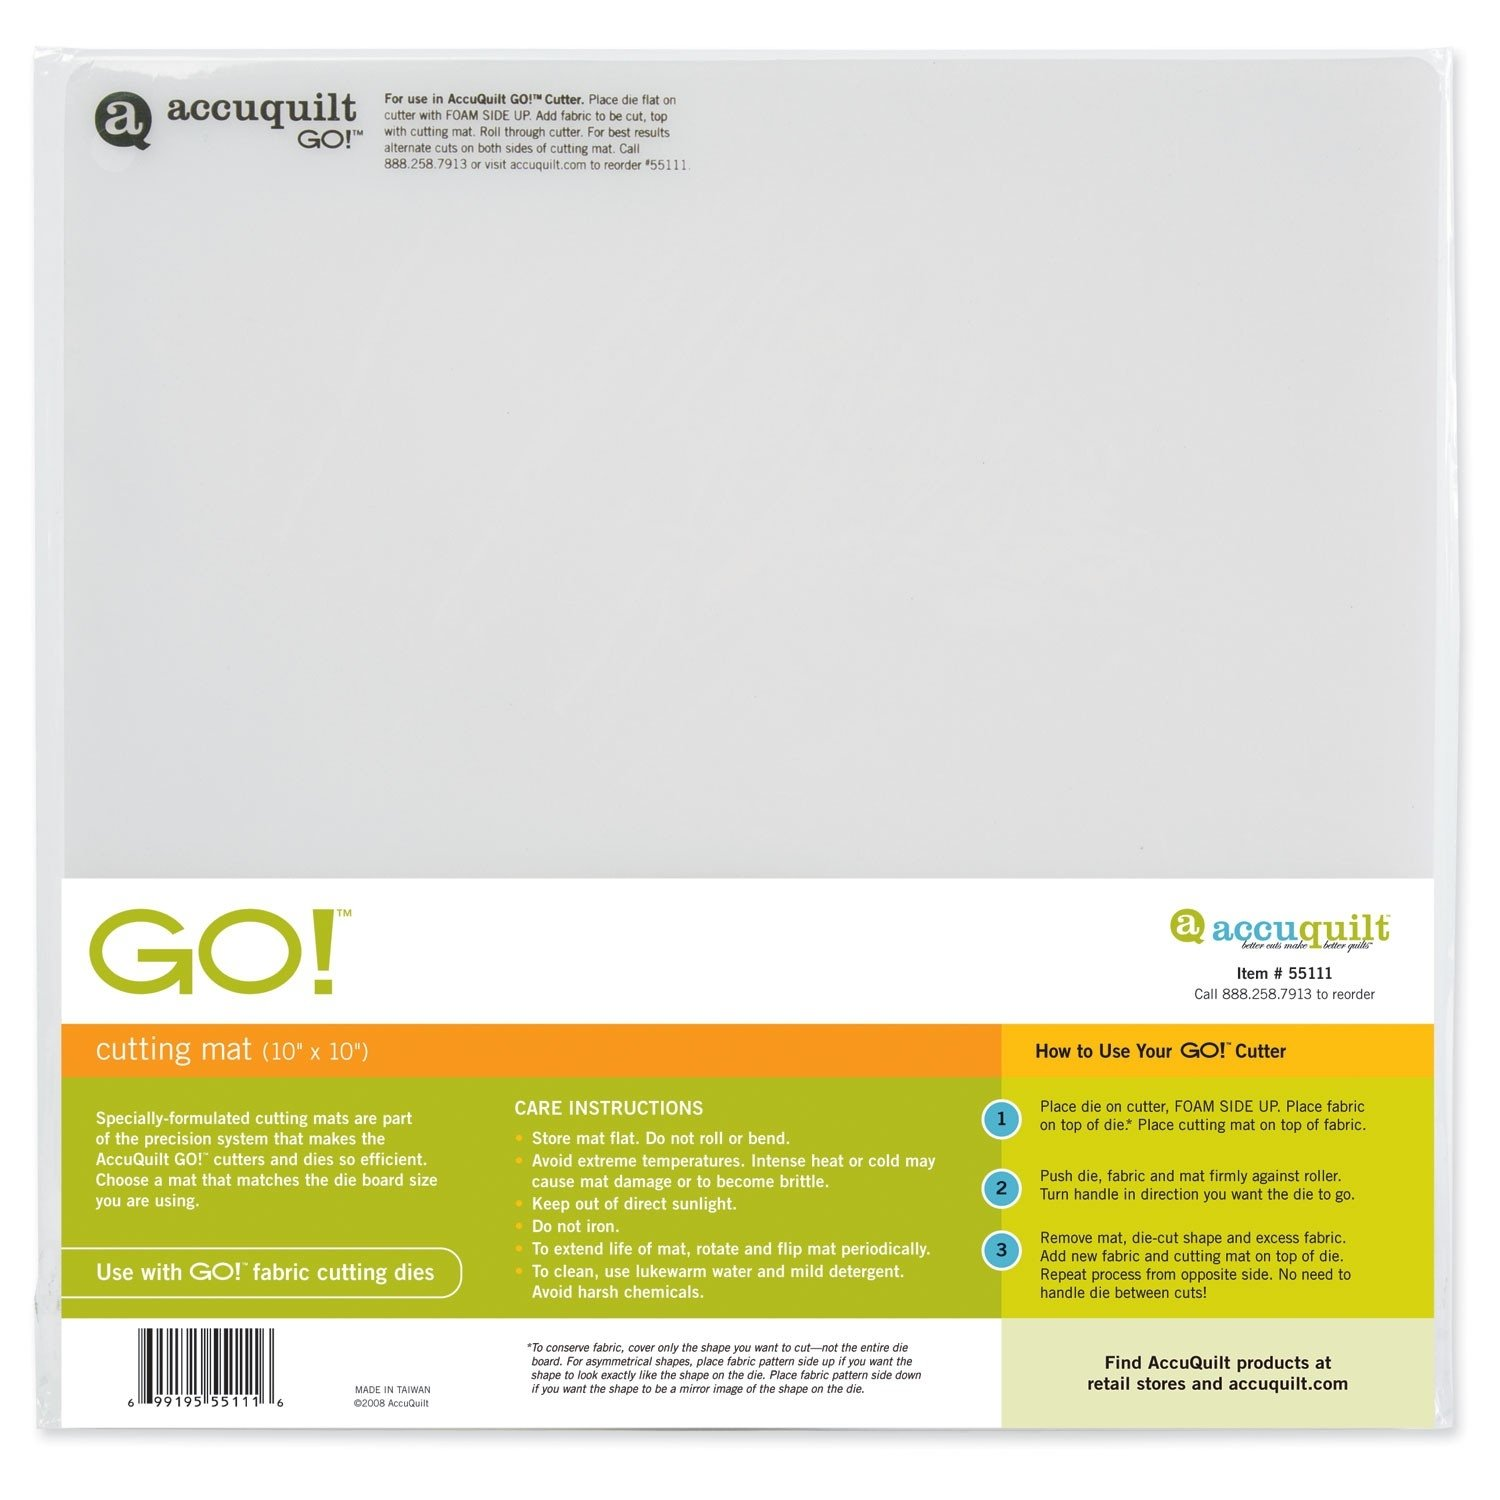 5-Inch-by-10-Inch AccuQuilt Go Cutting Mat